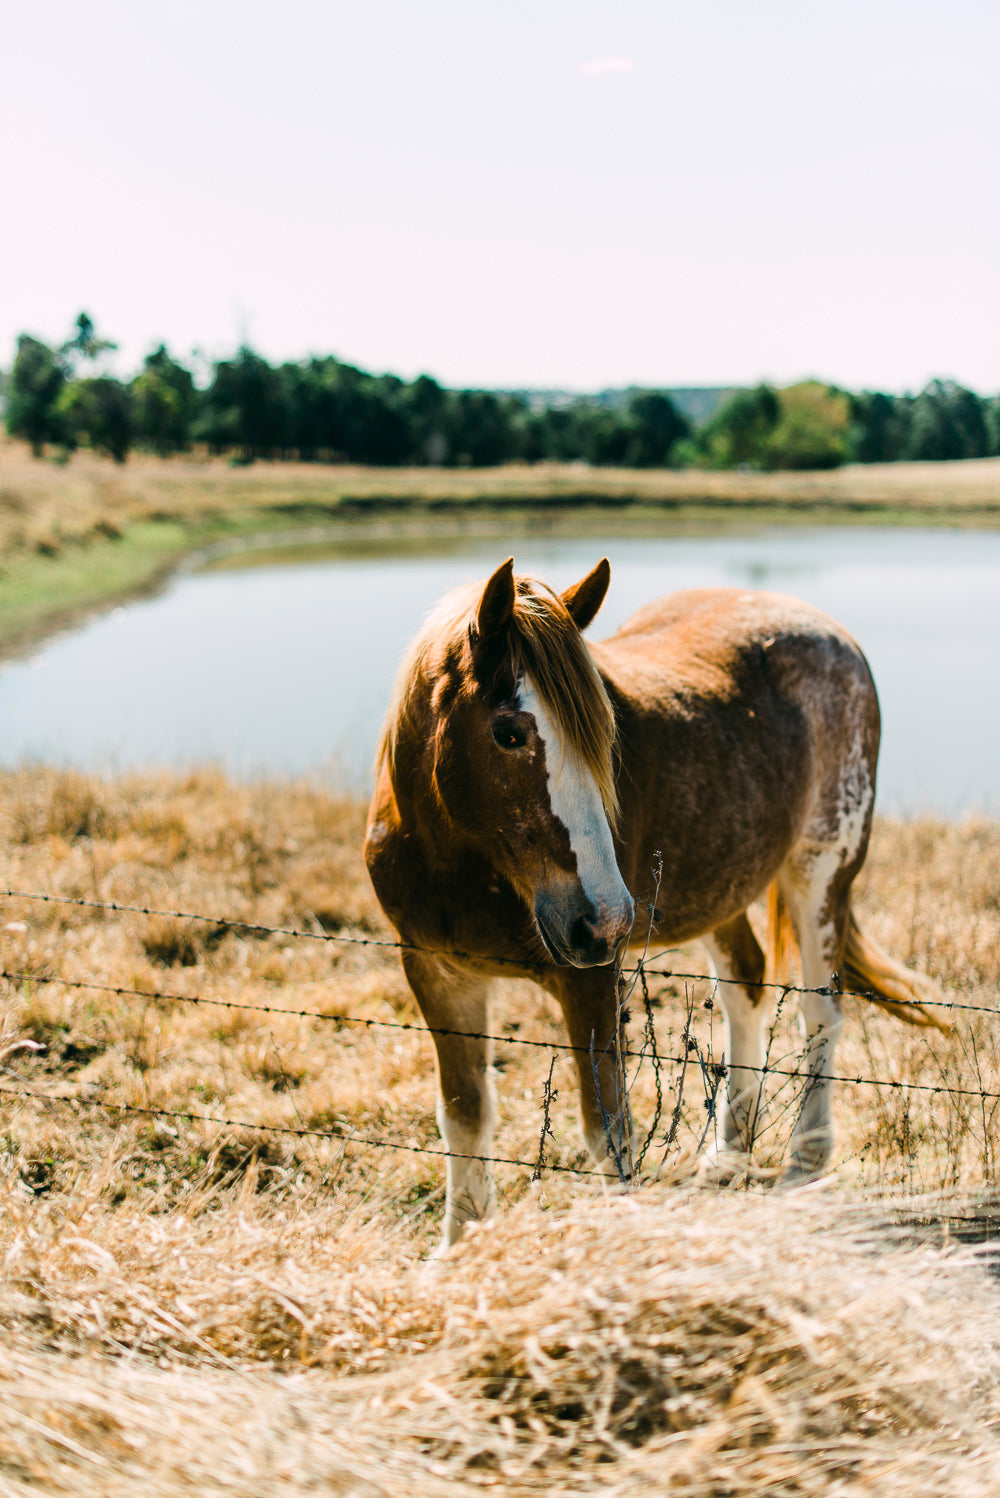 Horse Photographic Art Print